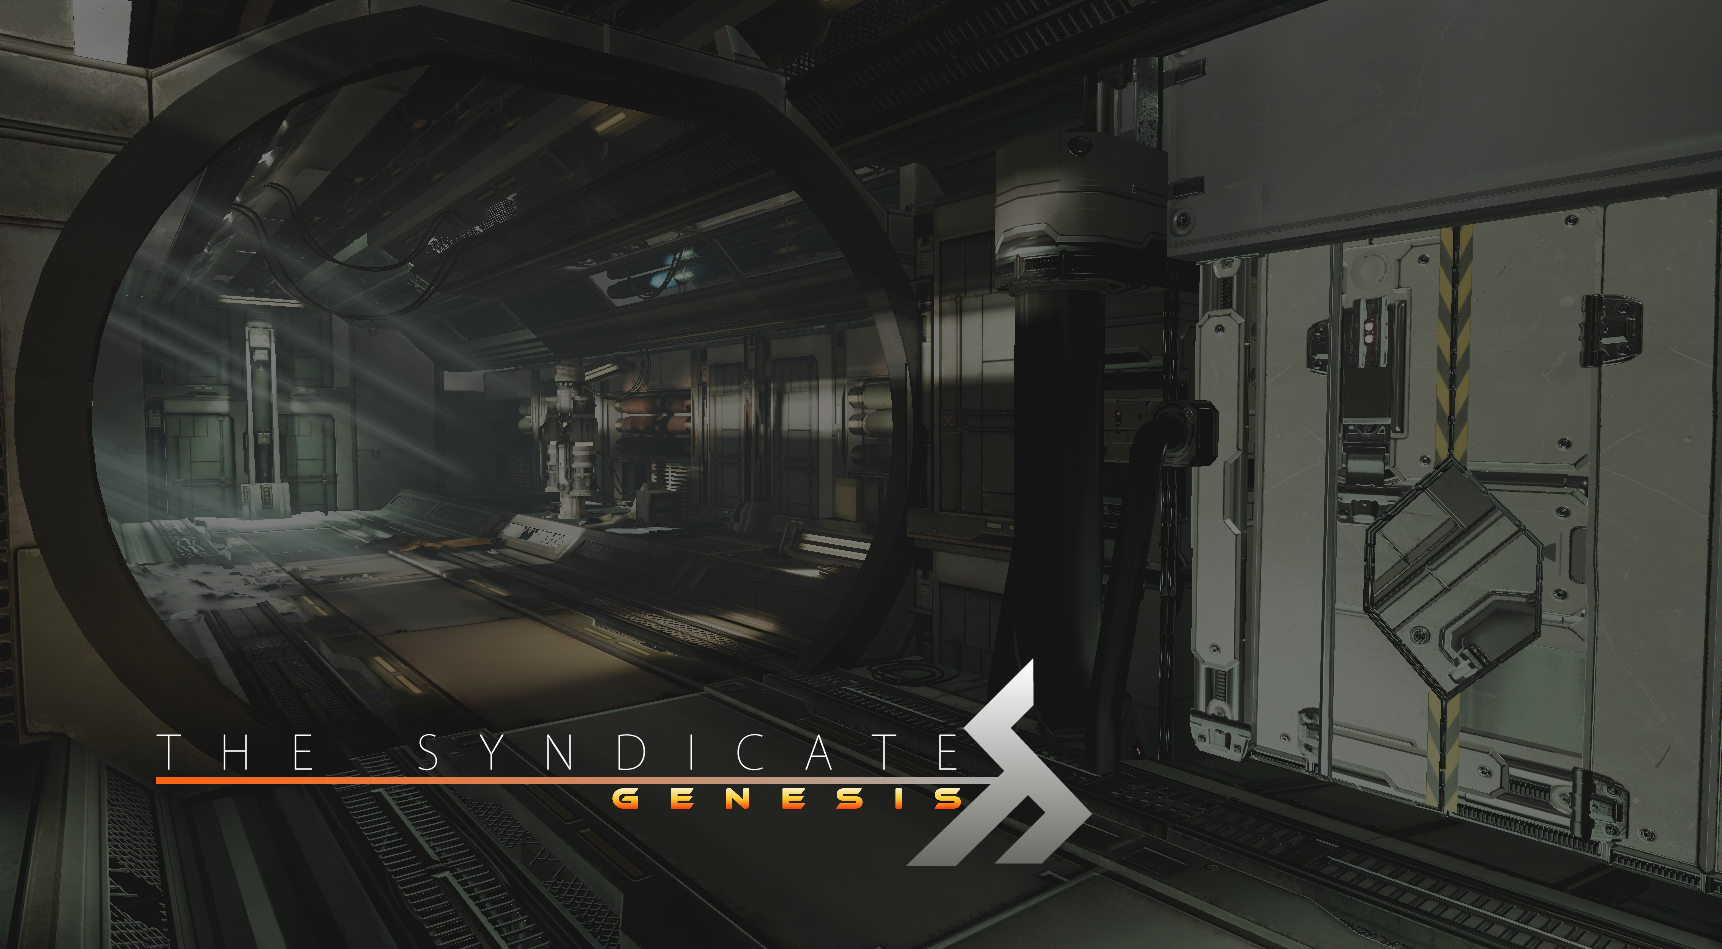 The Syndicate Genesis